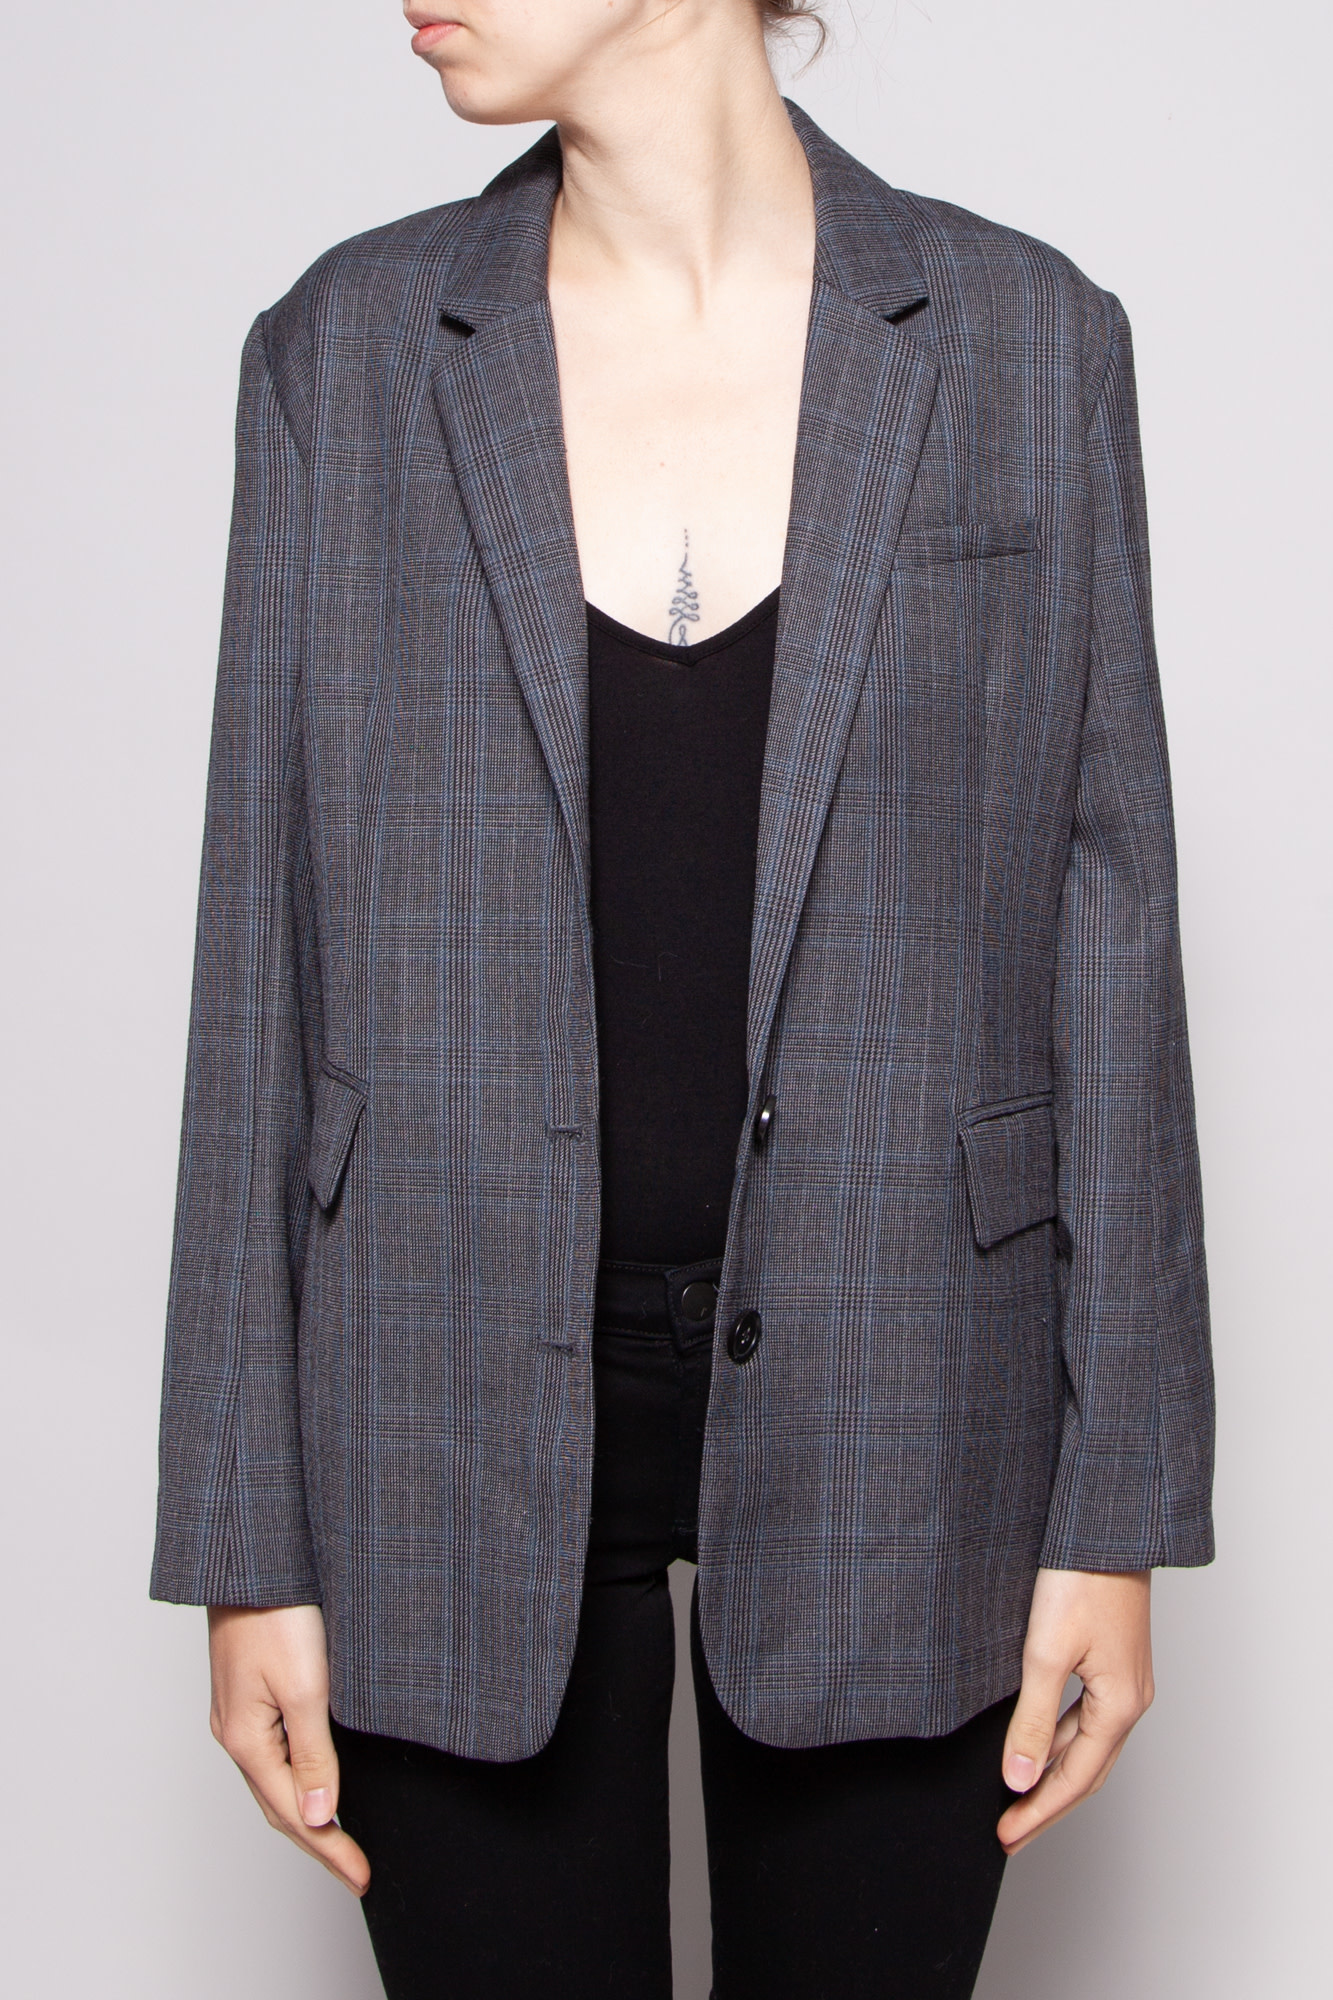 Rails NEW PRICE (WAS $110) - NAVY CHARCOAL CHECK BLAZER - NEW WITH TAG